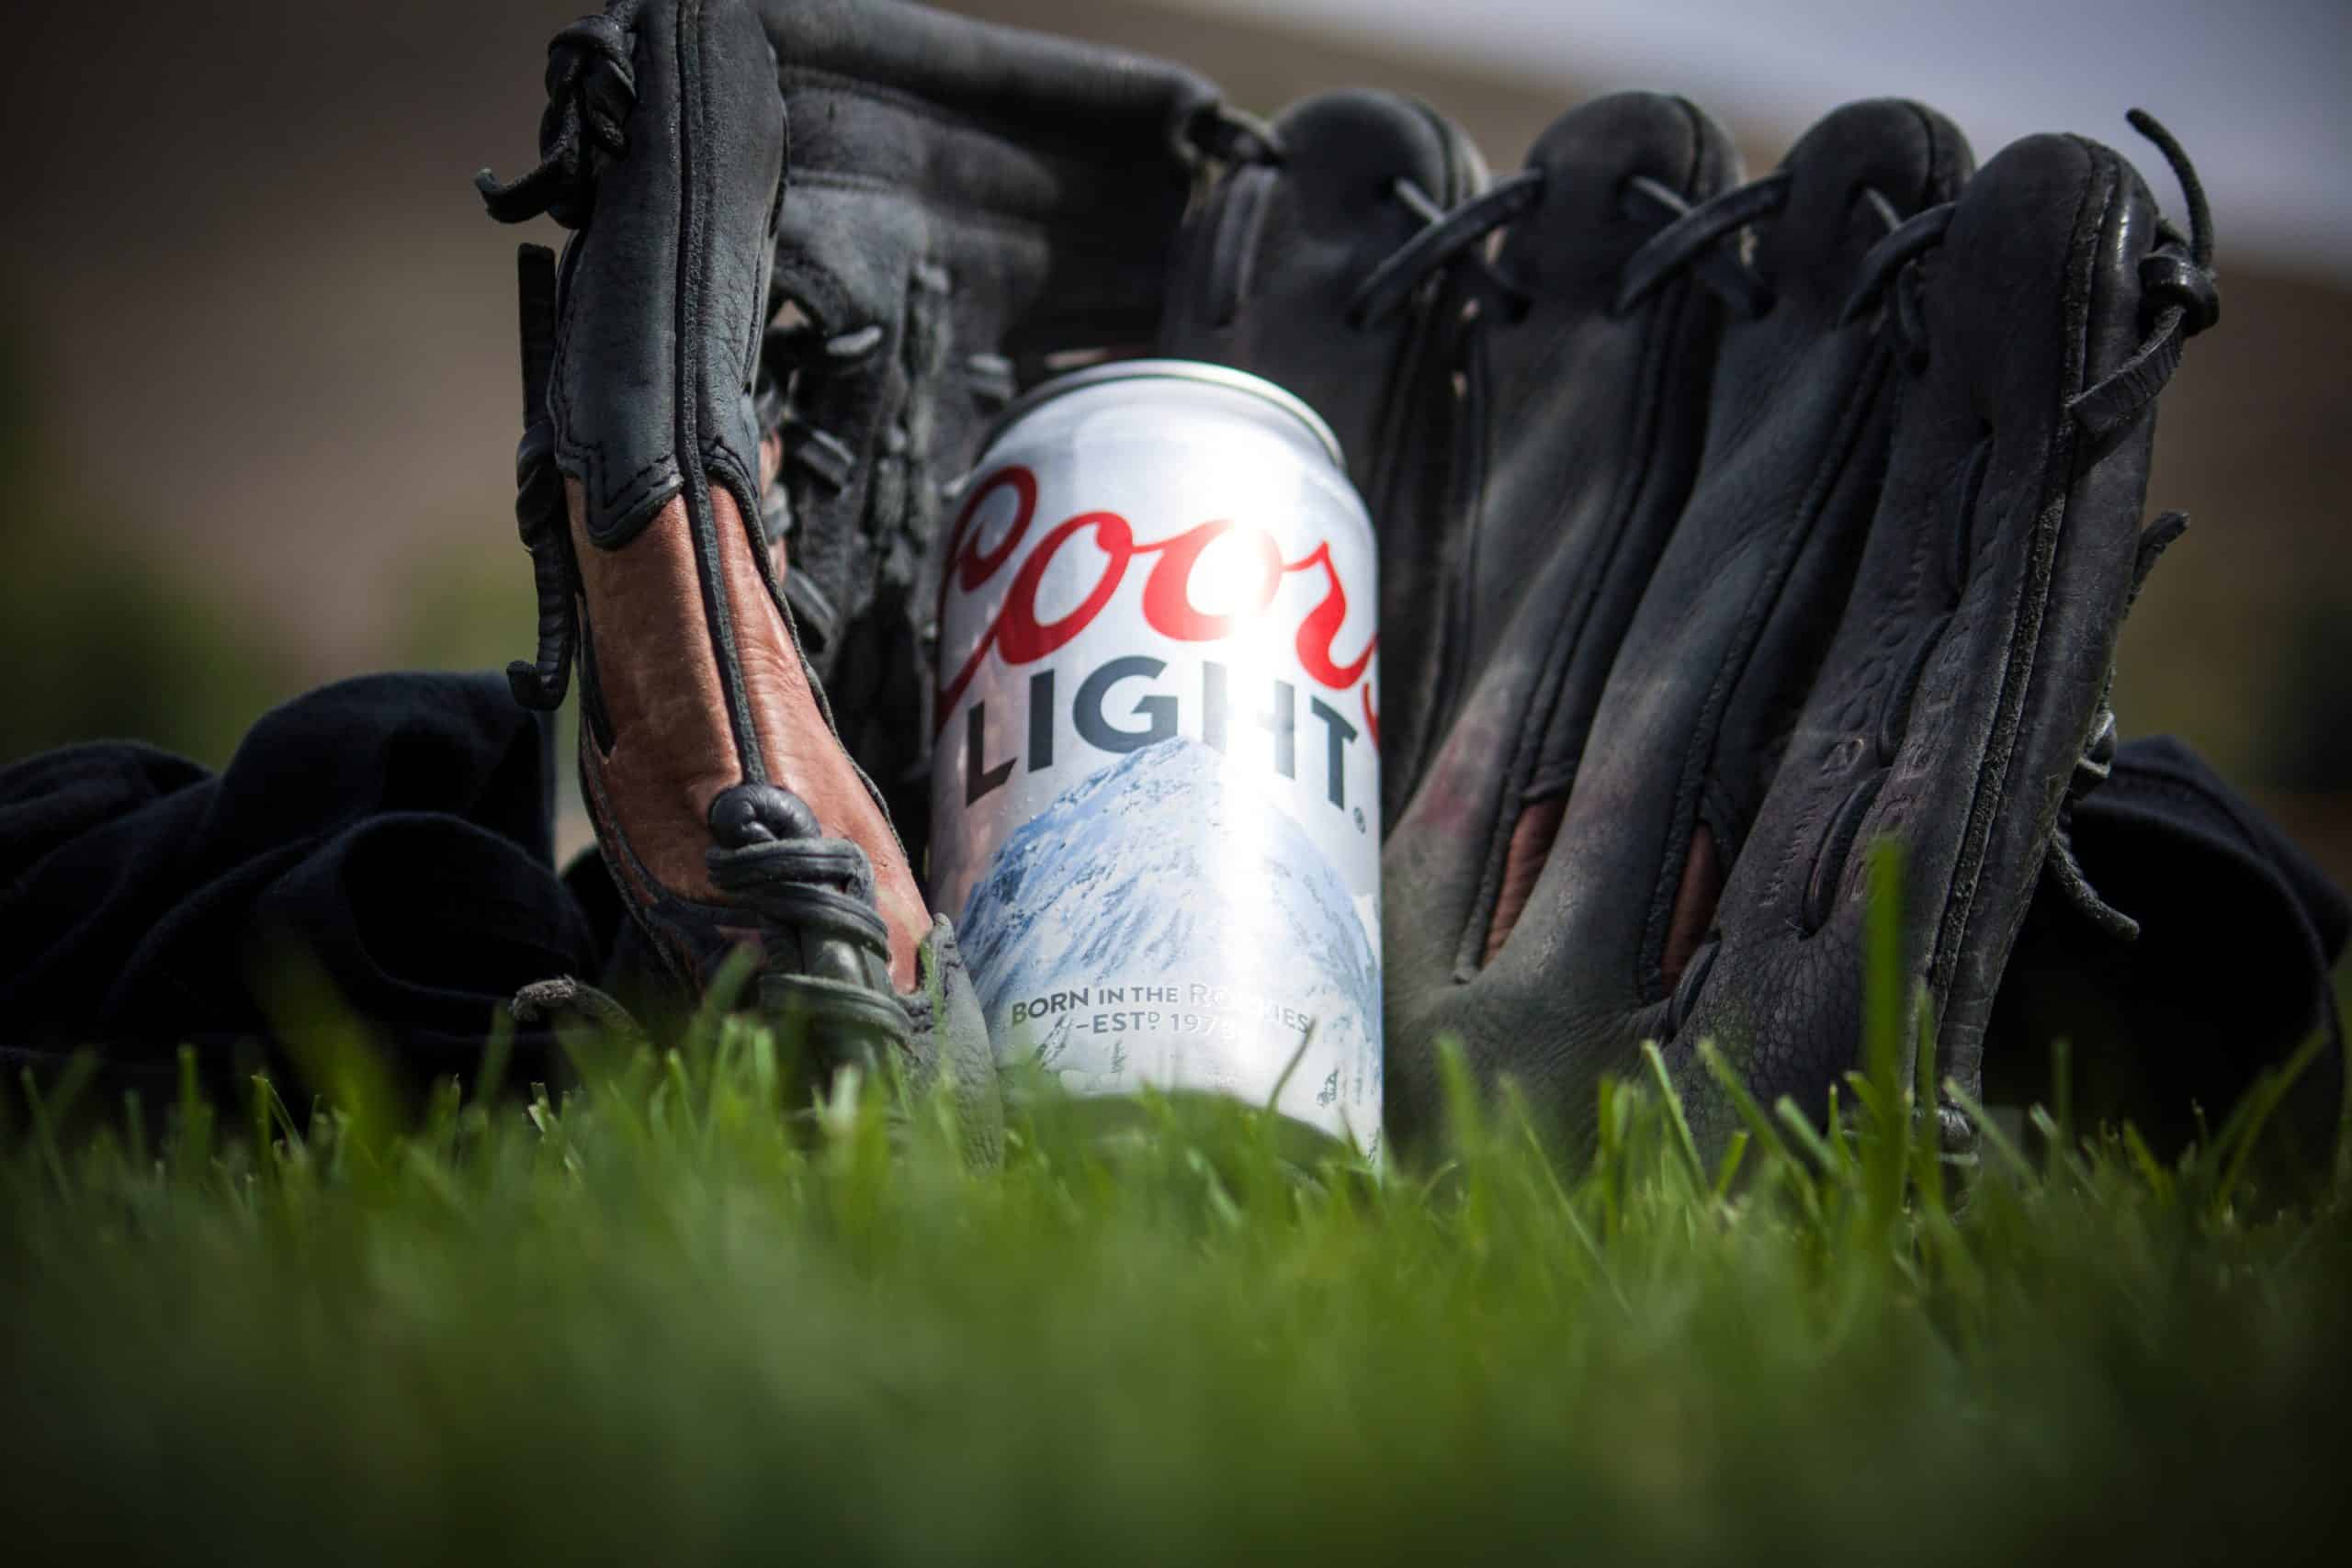 Canva Close Up Photography of Coors Light Beer Near Black Baseball Mitts scaled